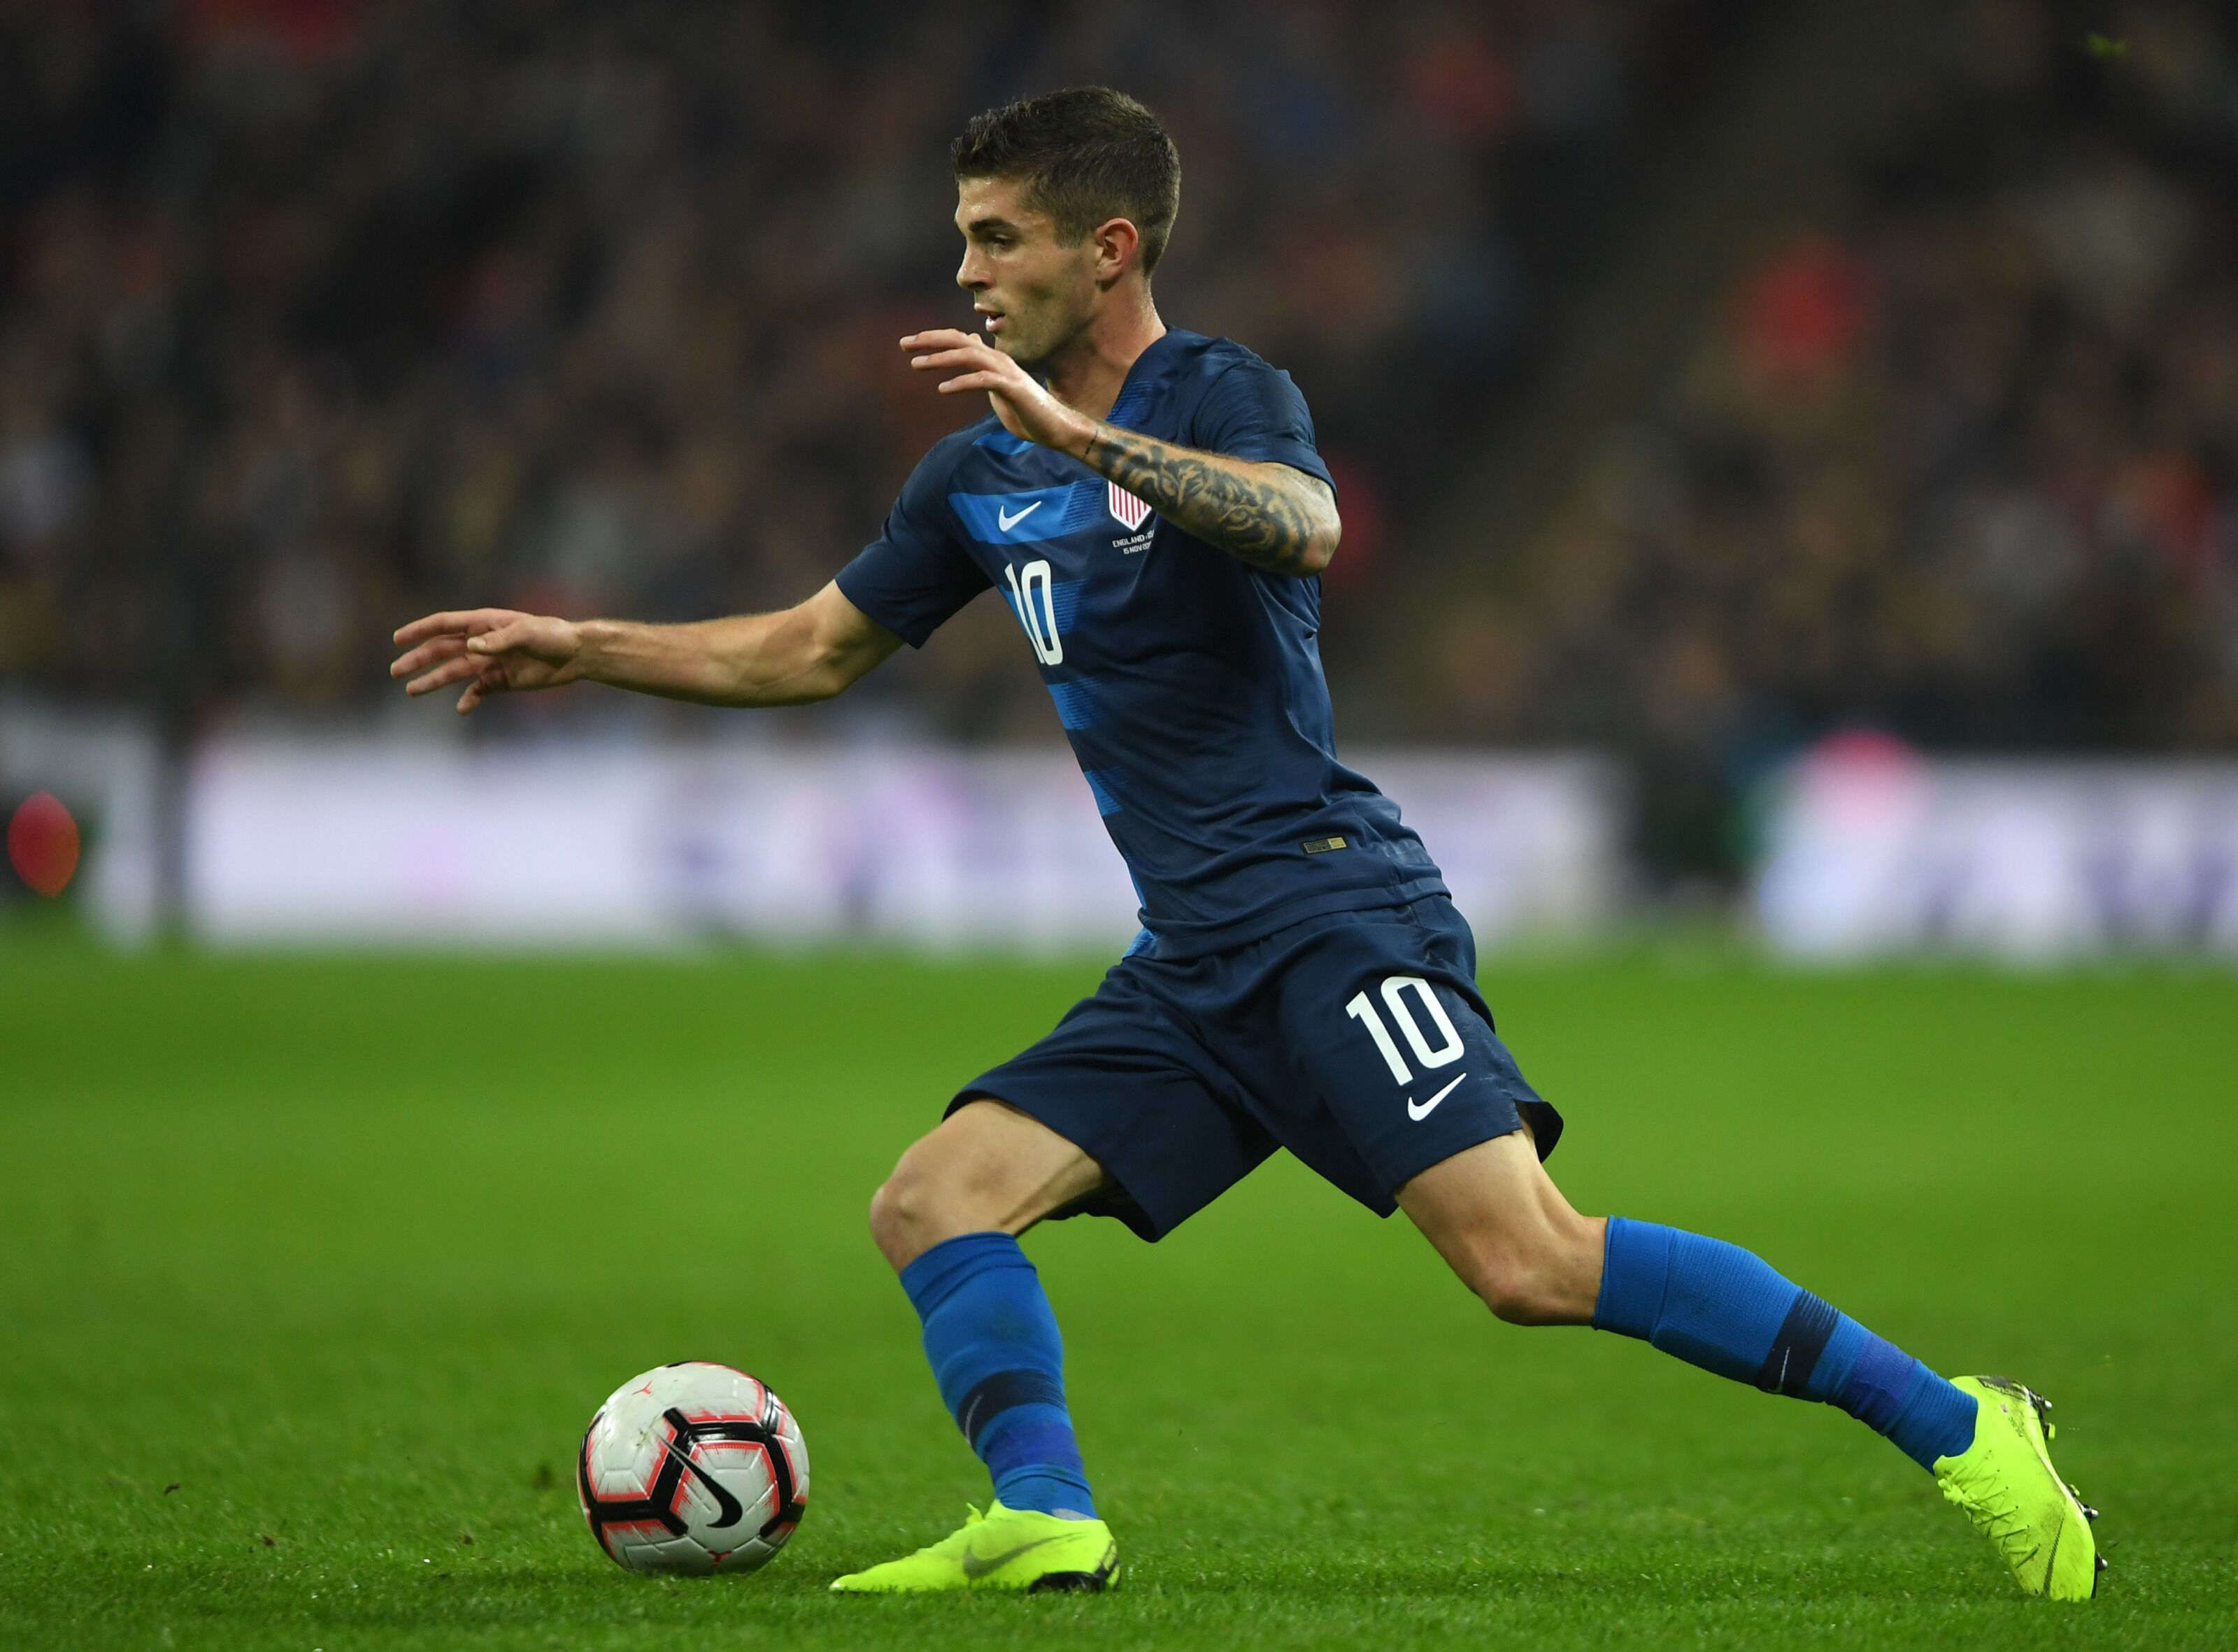 Christian Pulisic lucky to return to Chelsea and Frank Lampard